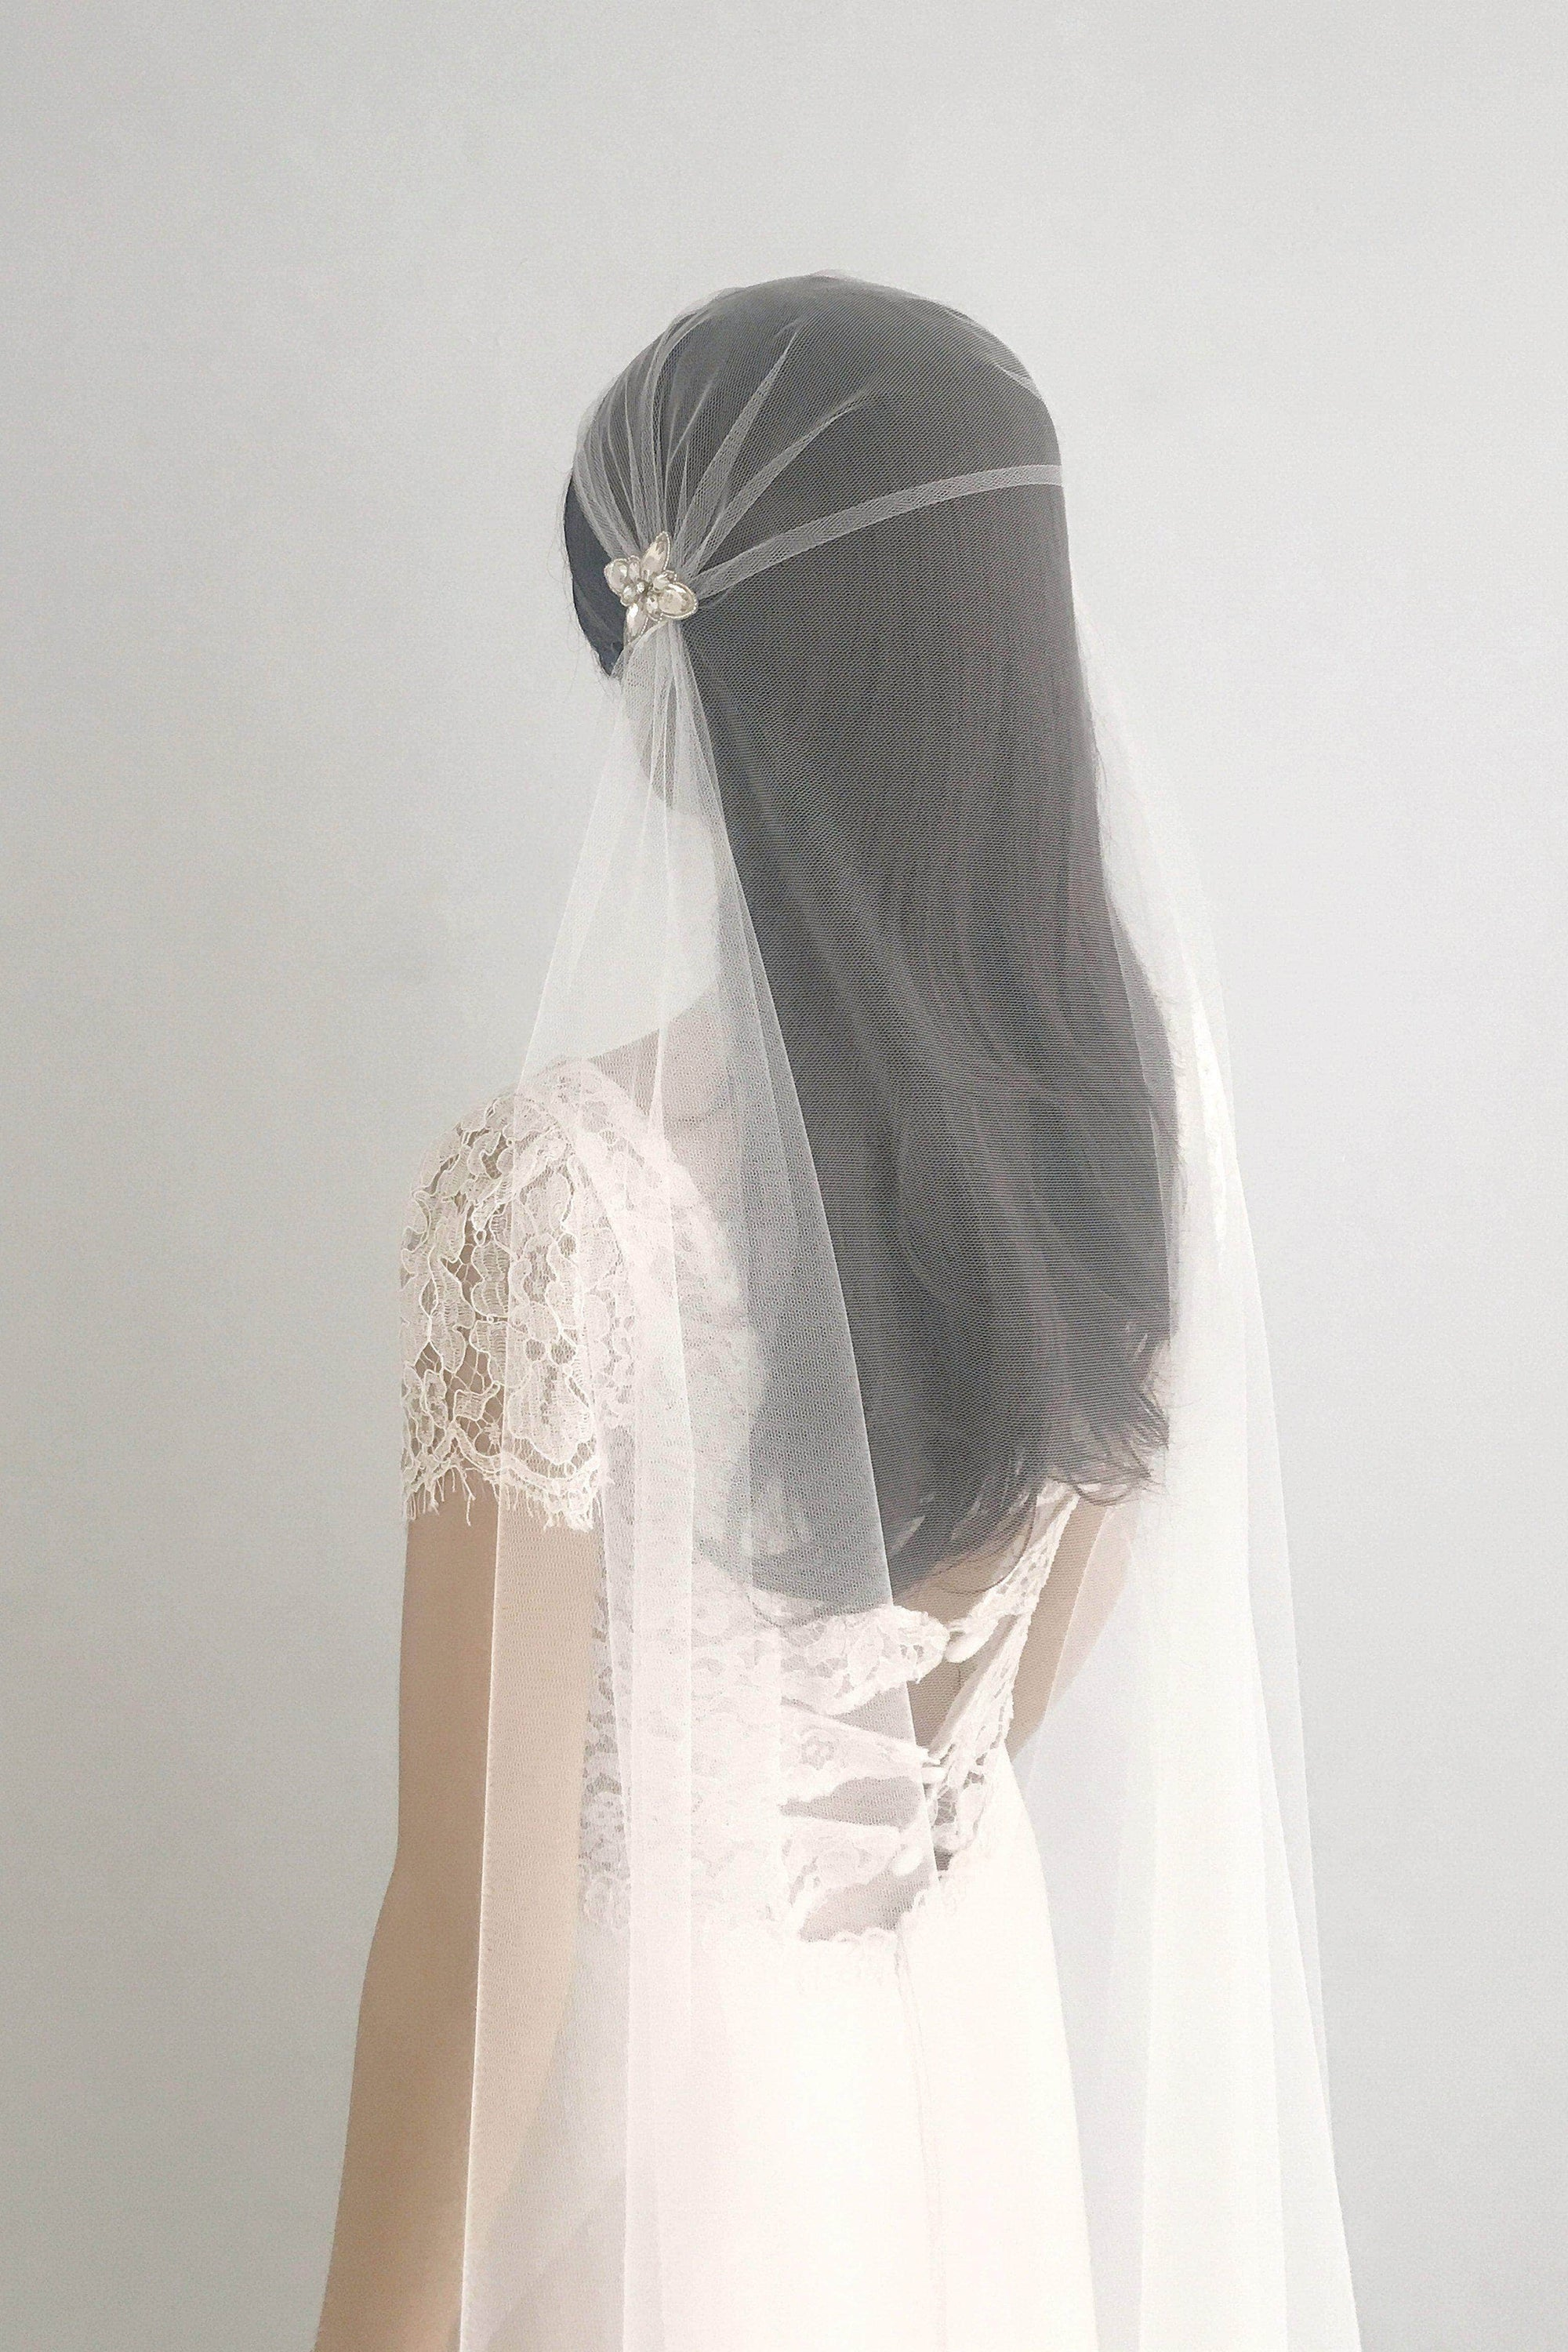 Wedding Veil Juliet cap wedding veil with crystal beading embellishments - 'Perla'